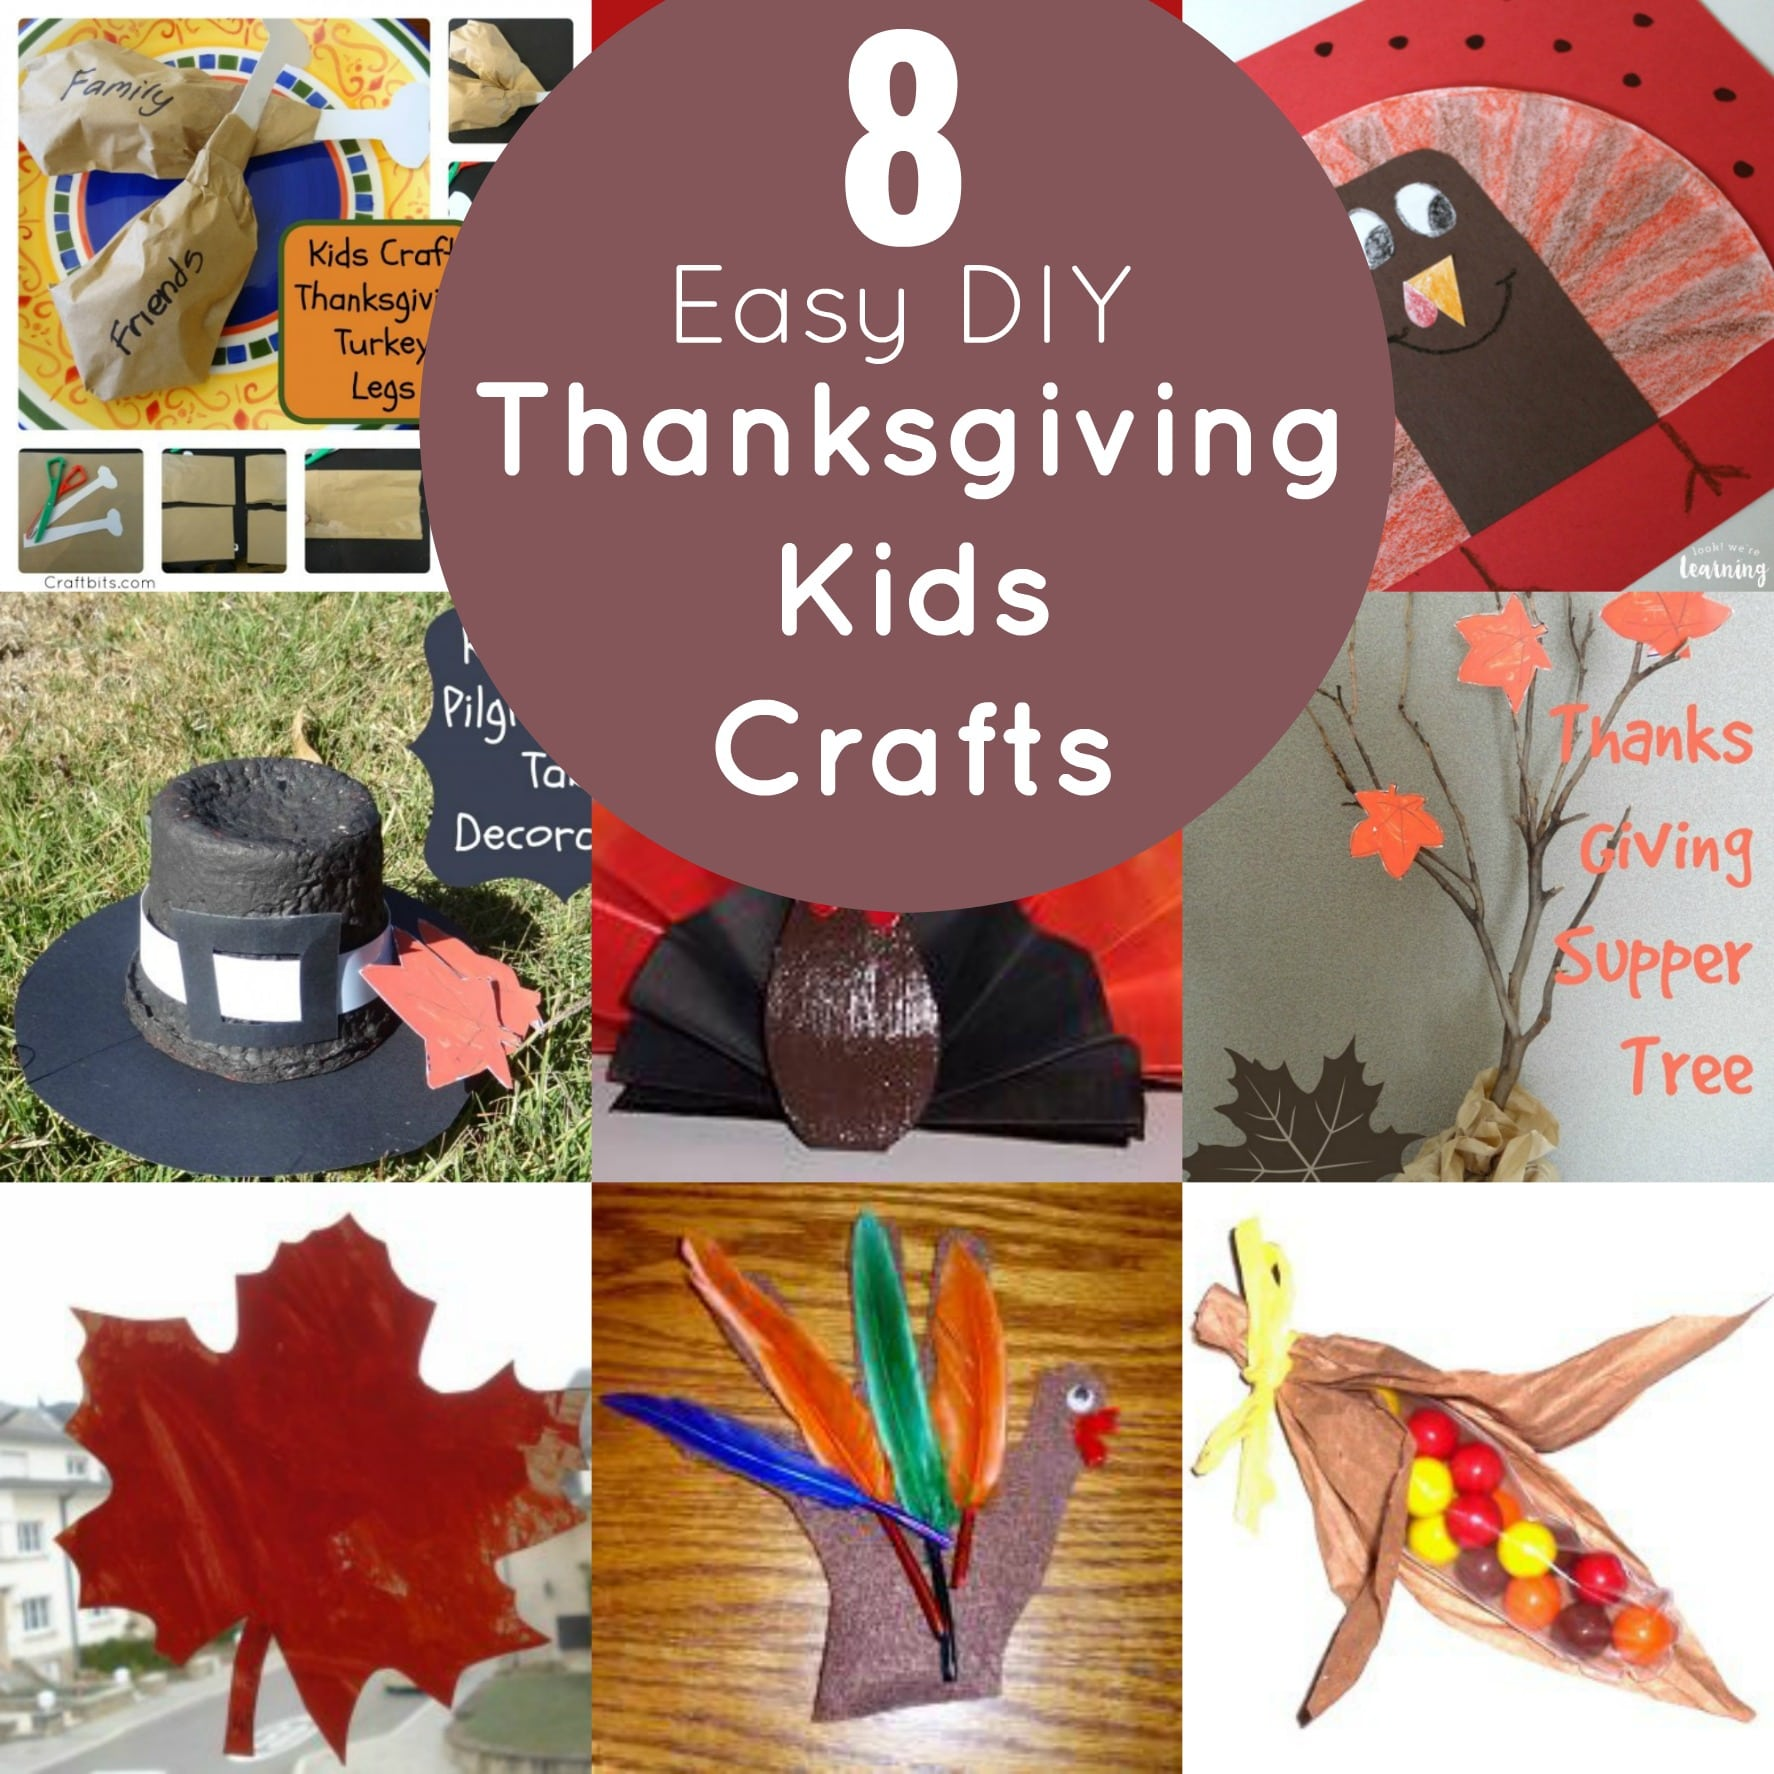 8 Easy DIY Thanksgiving Crafts for Kids